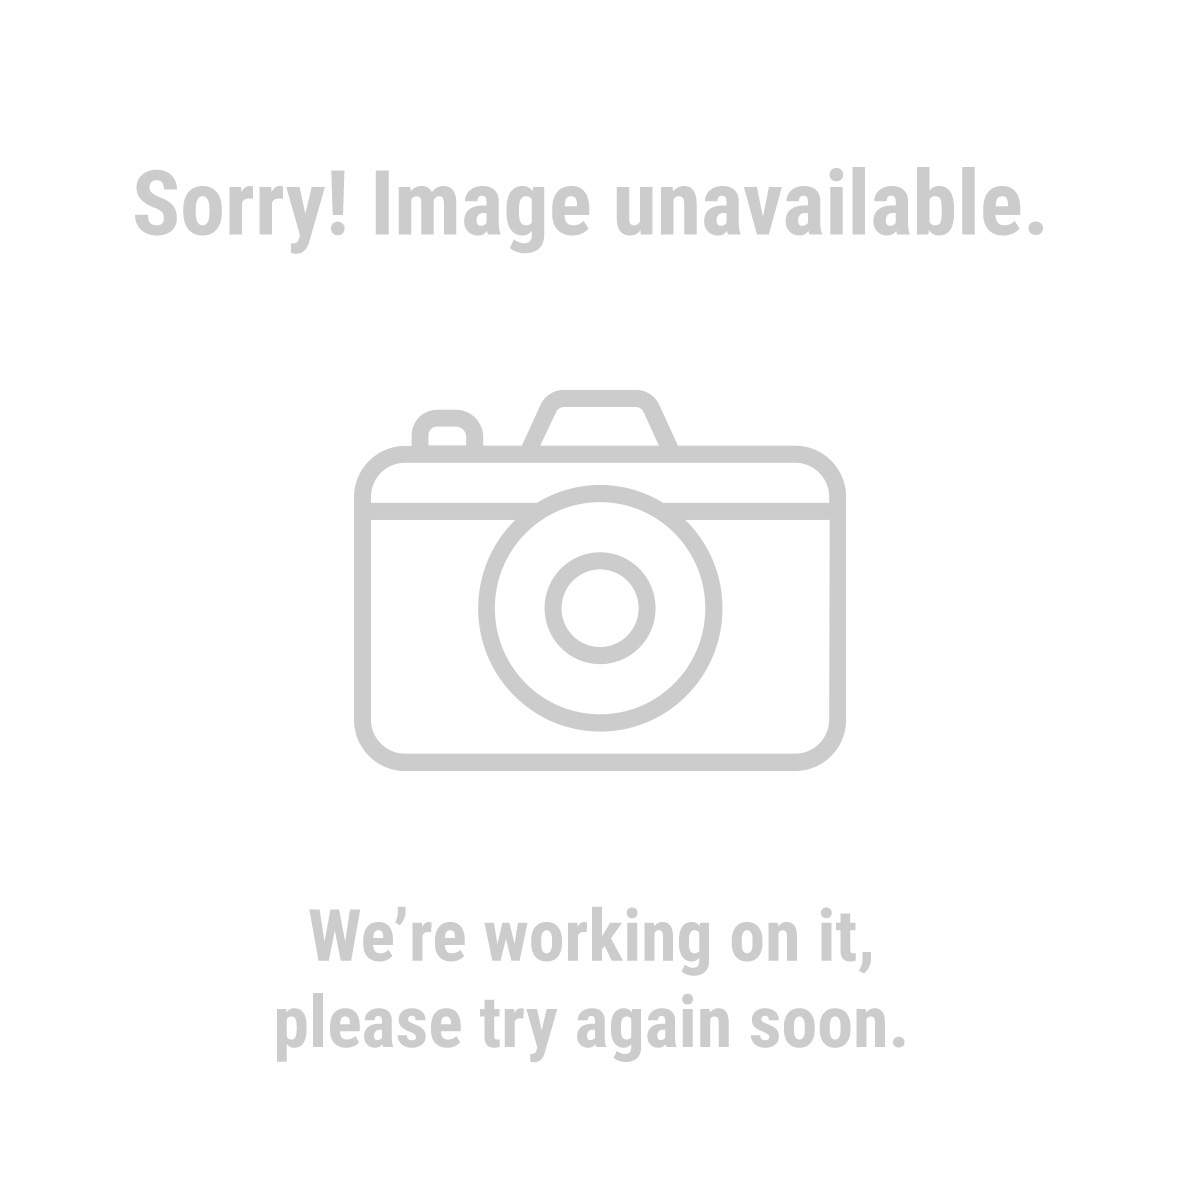 Pittsburgh® Automotive 96177 Fender Cover Work Mat